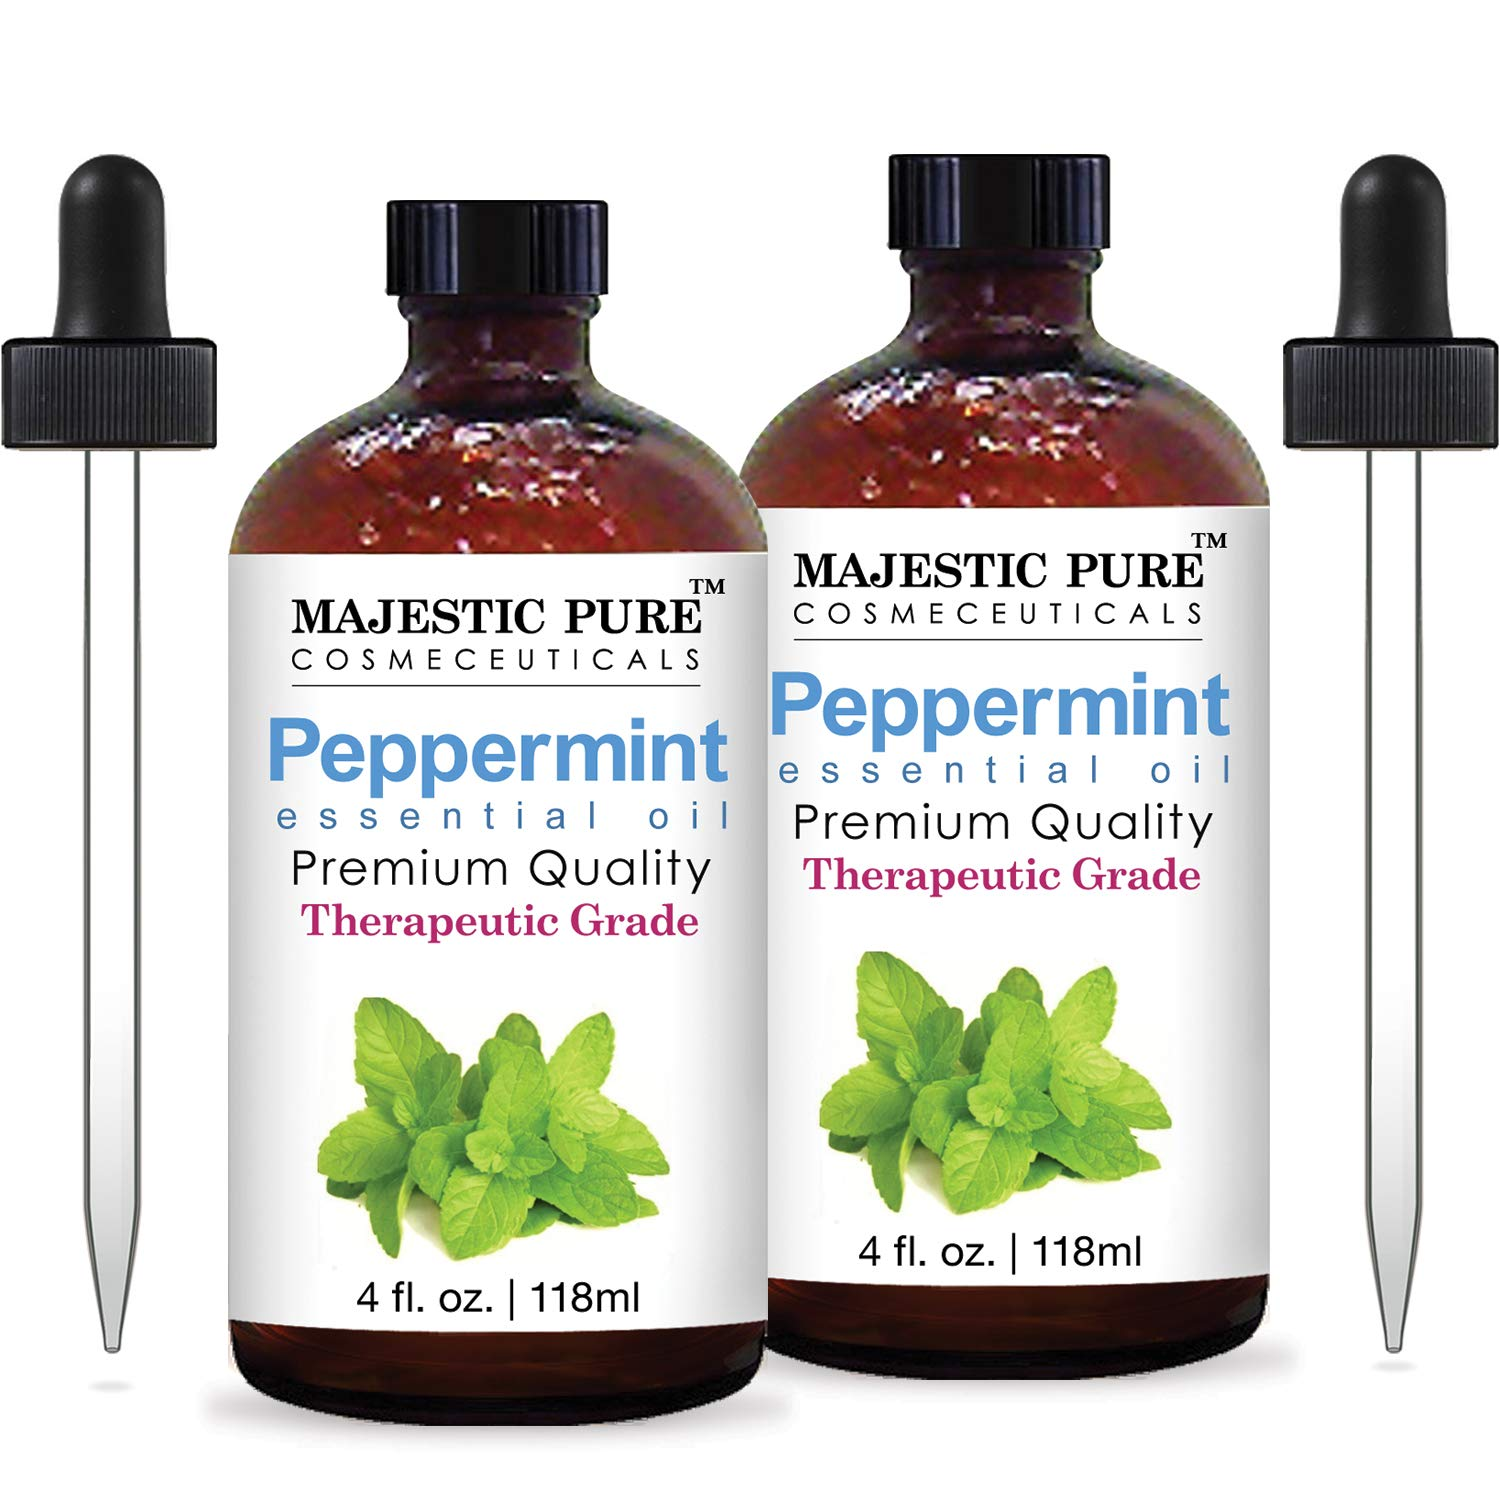 Majestic Pure Peppermint Essential Oil, Pure and Natural, Therapeutic Grade Peppermint Oil, Set of 2 4 fl. oz.